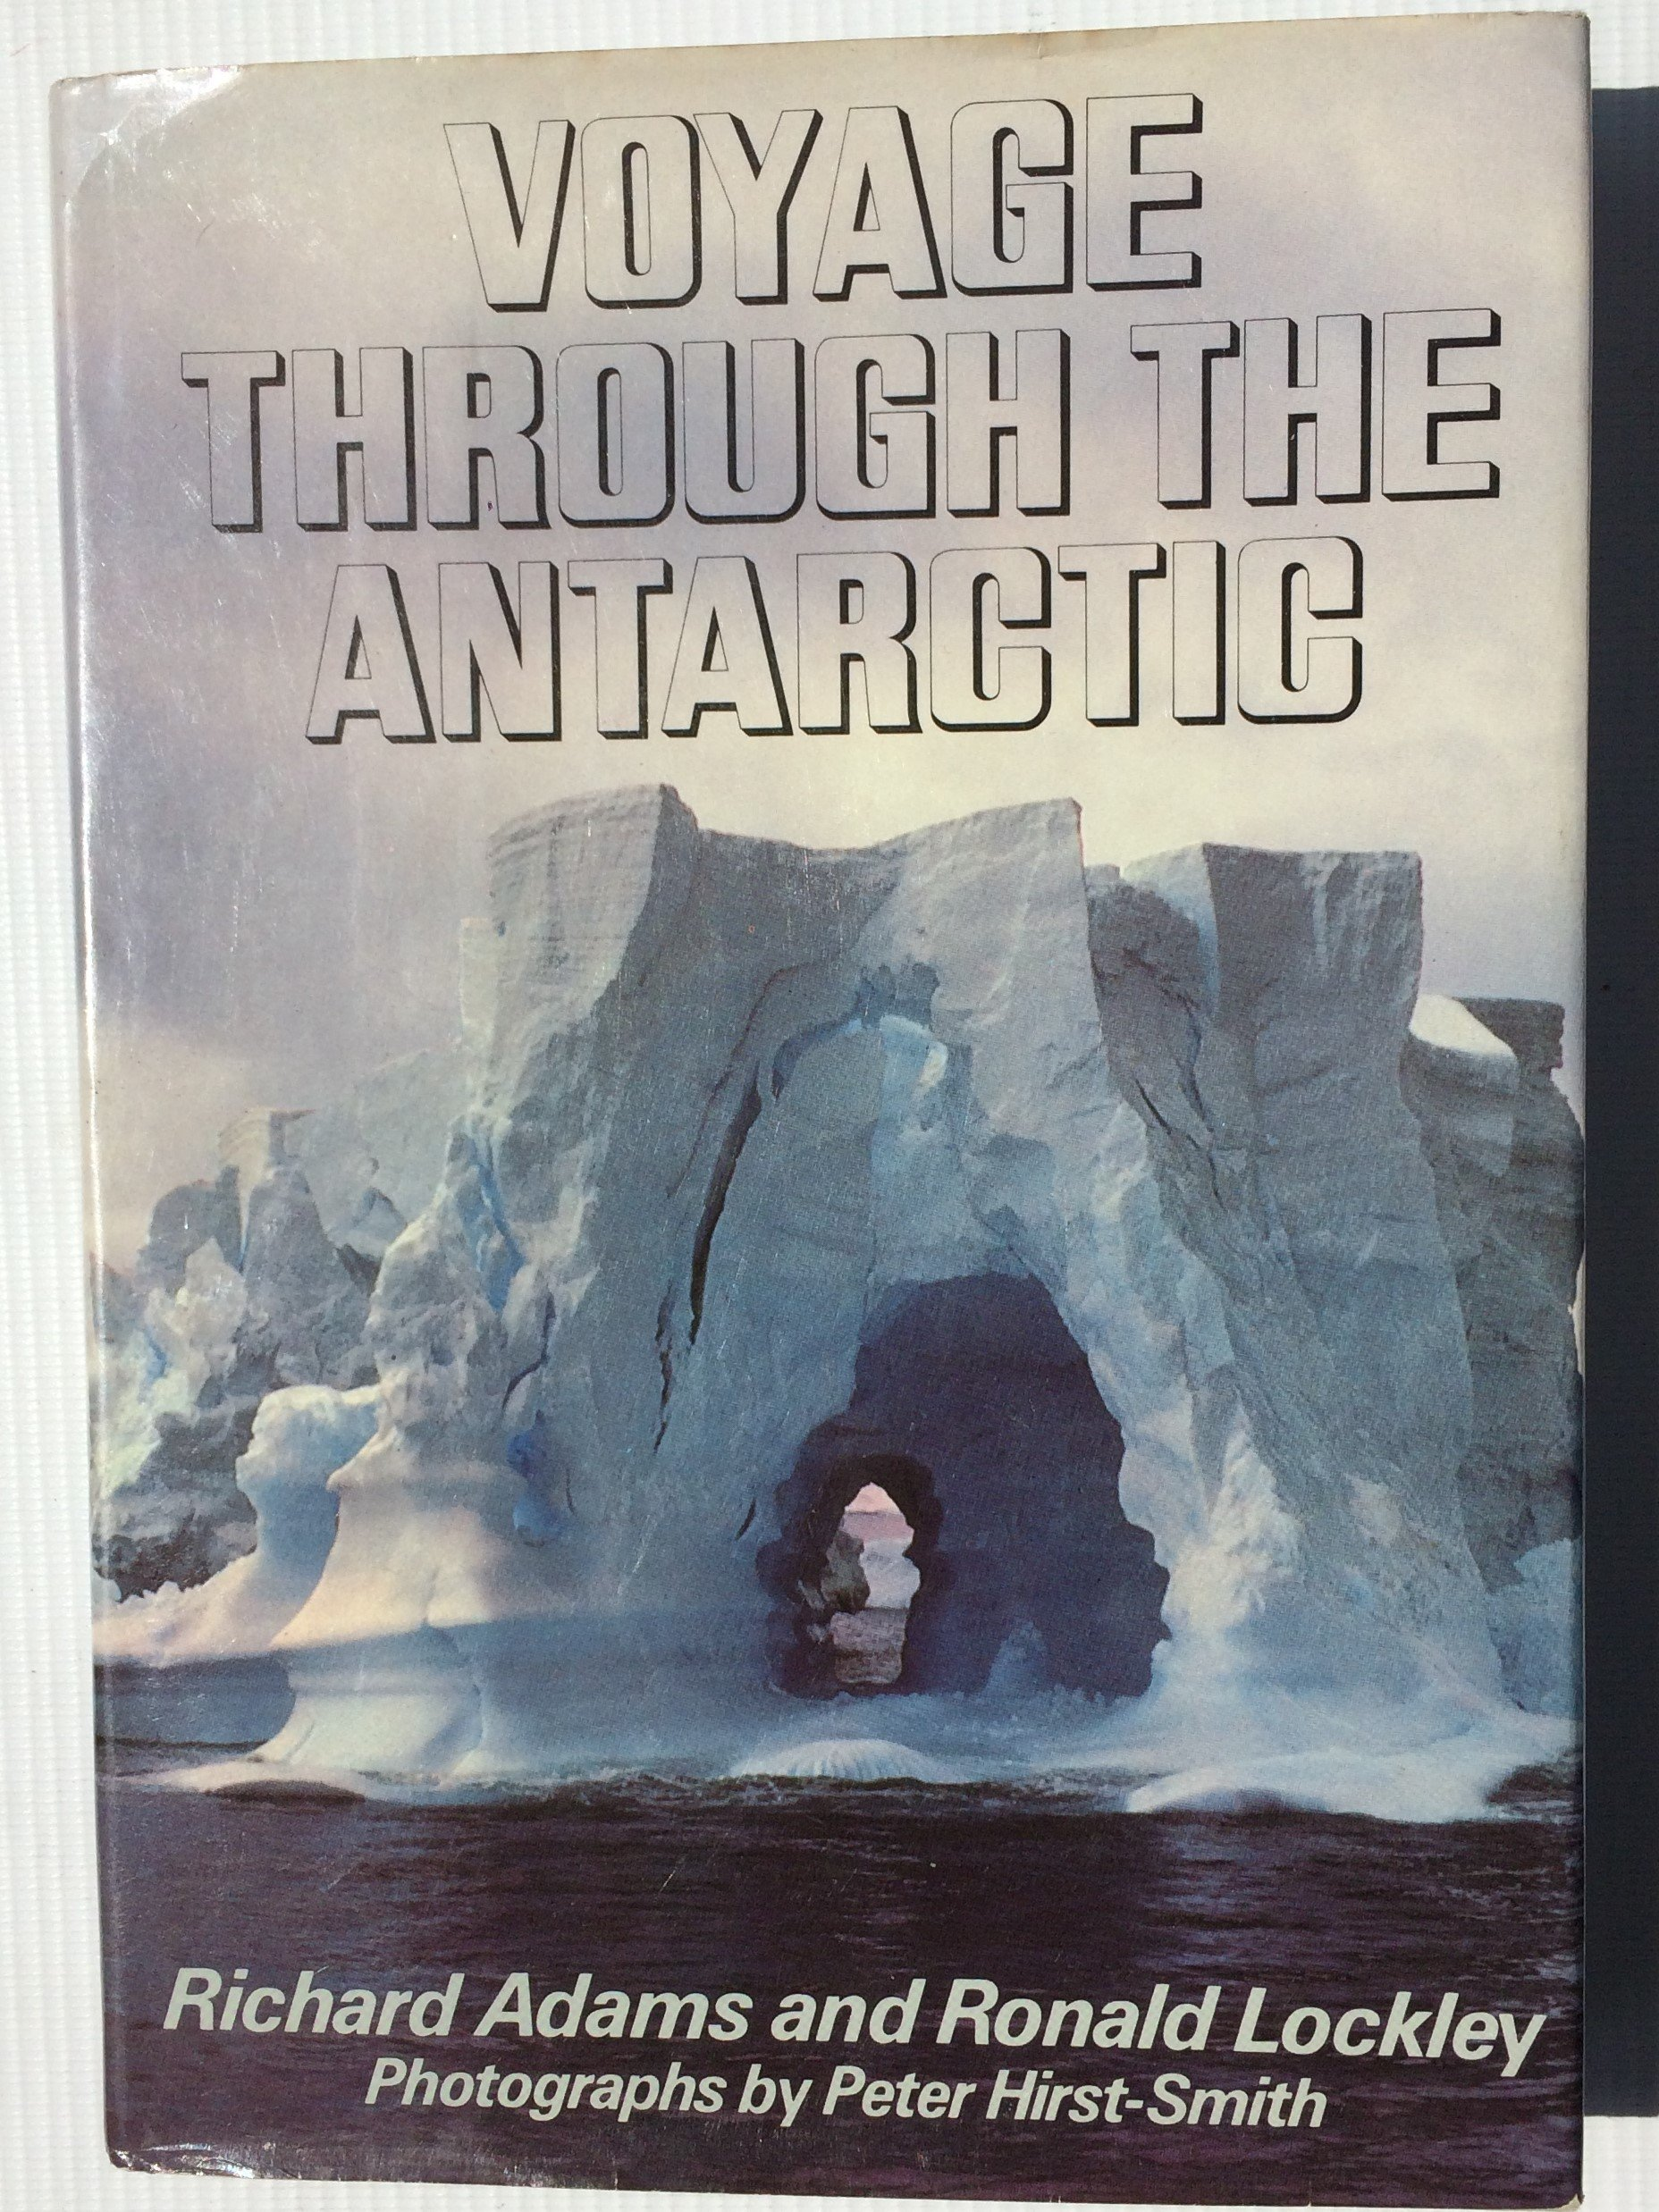 Voyage Through the Antarctic by Alfred a Knopf Inc